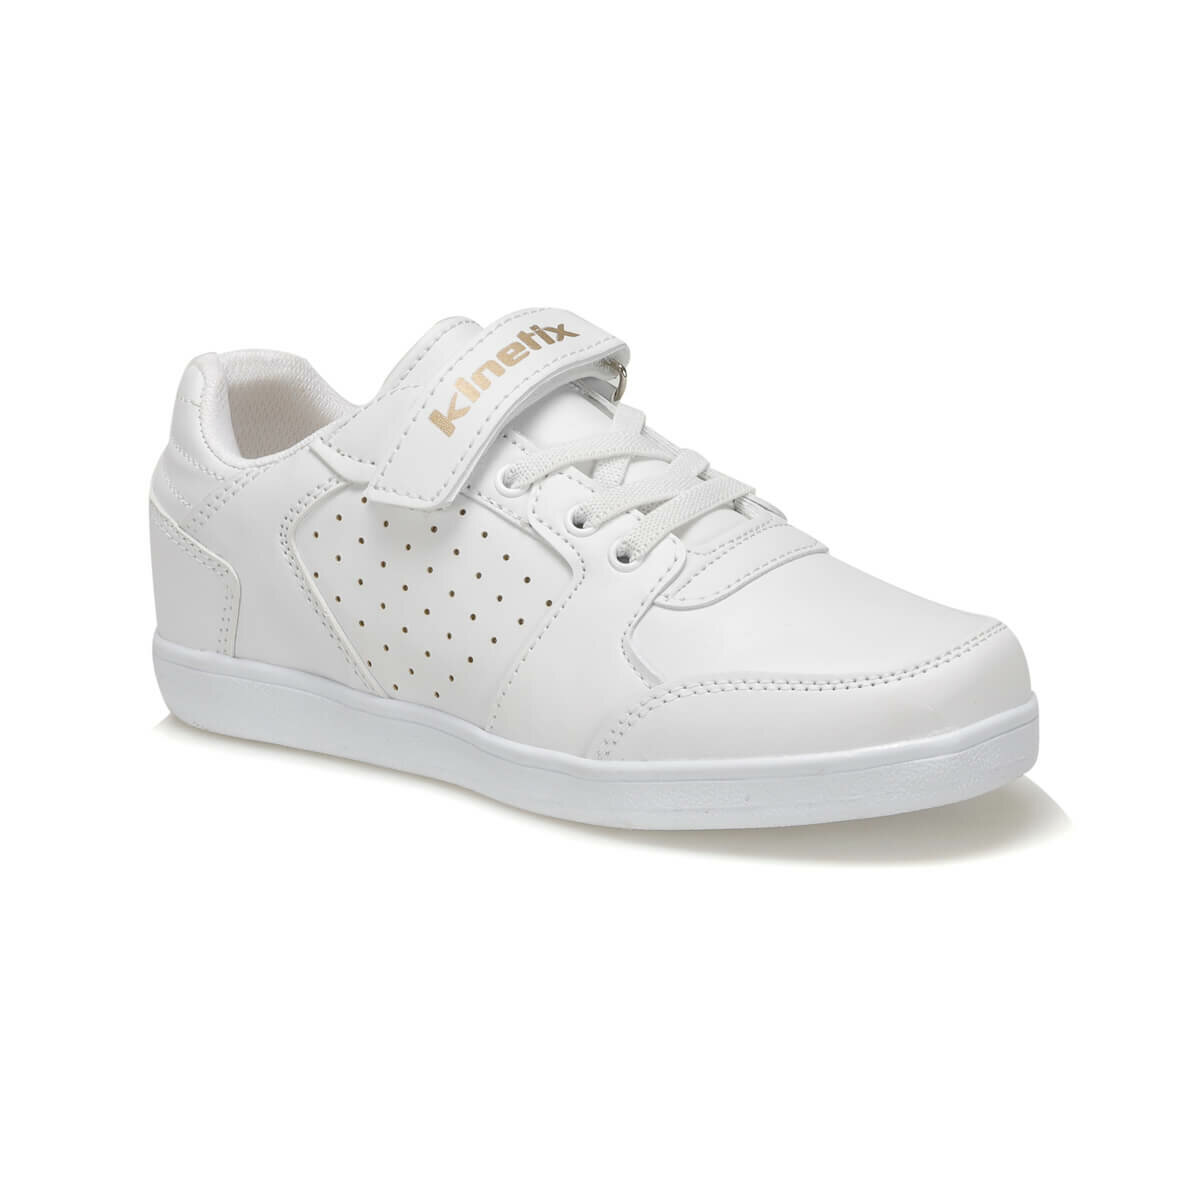 FLO PODER White Male Child Sneaker Shoes KINETIX